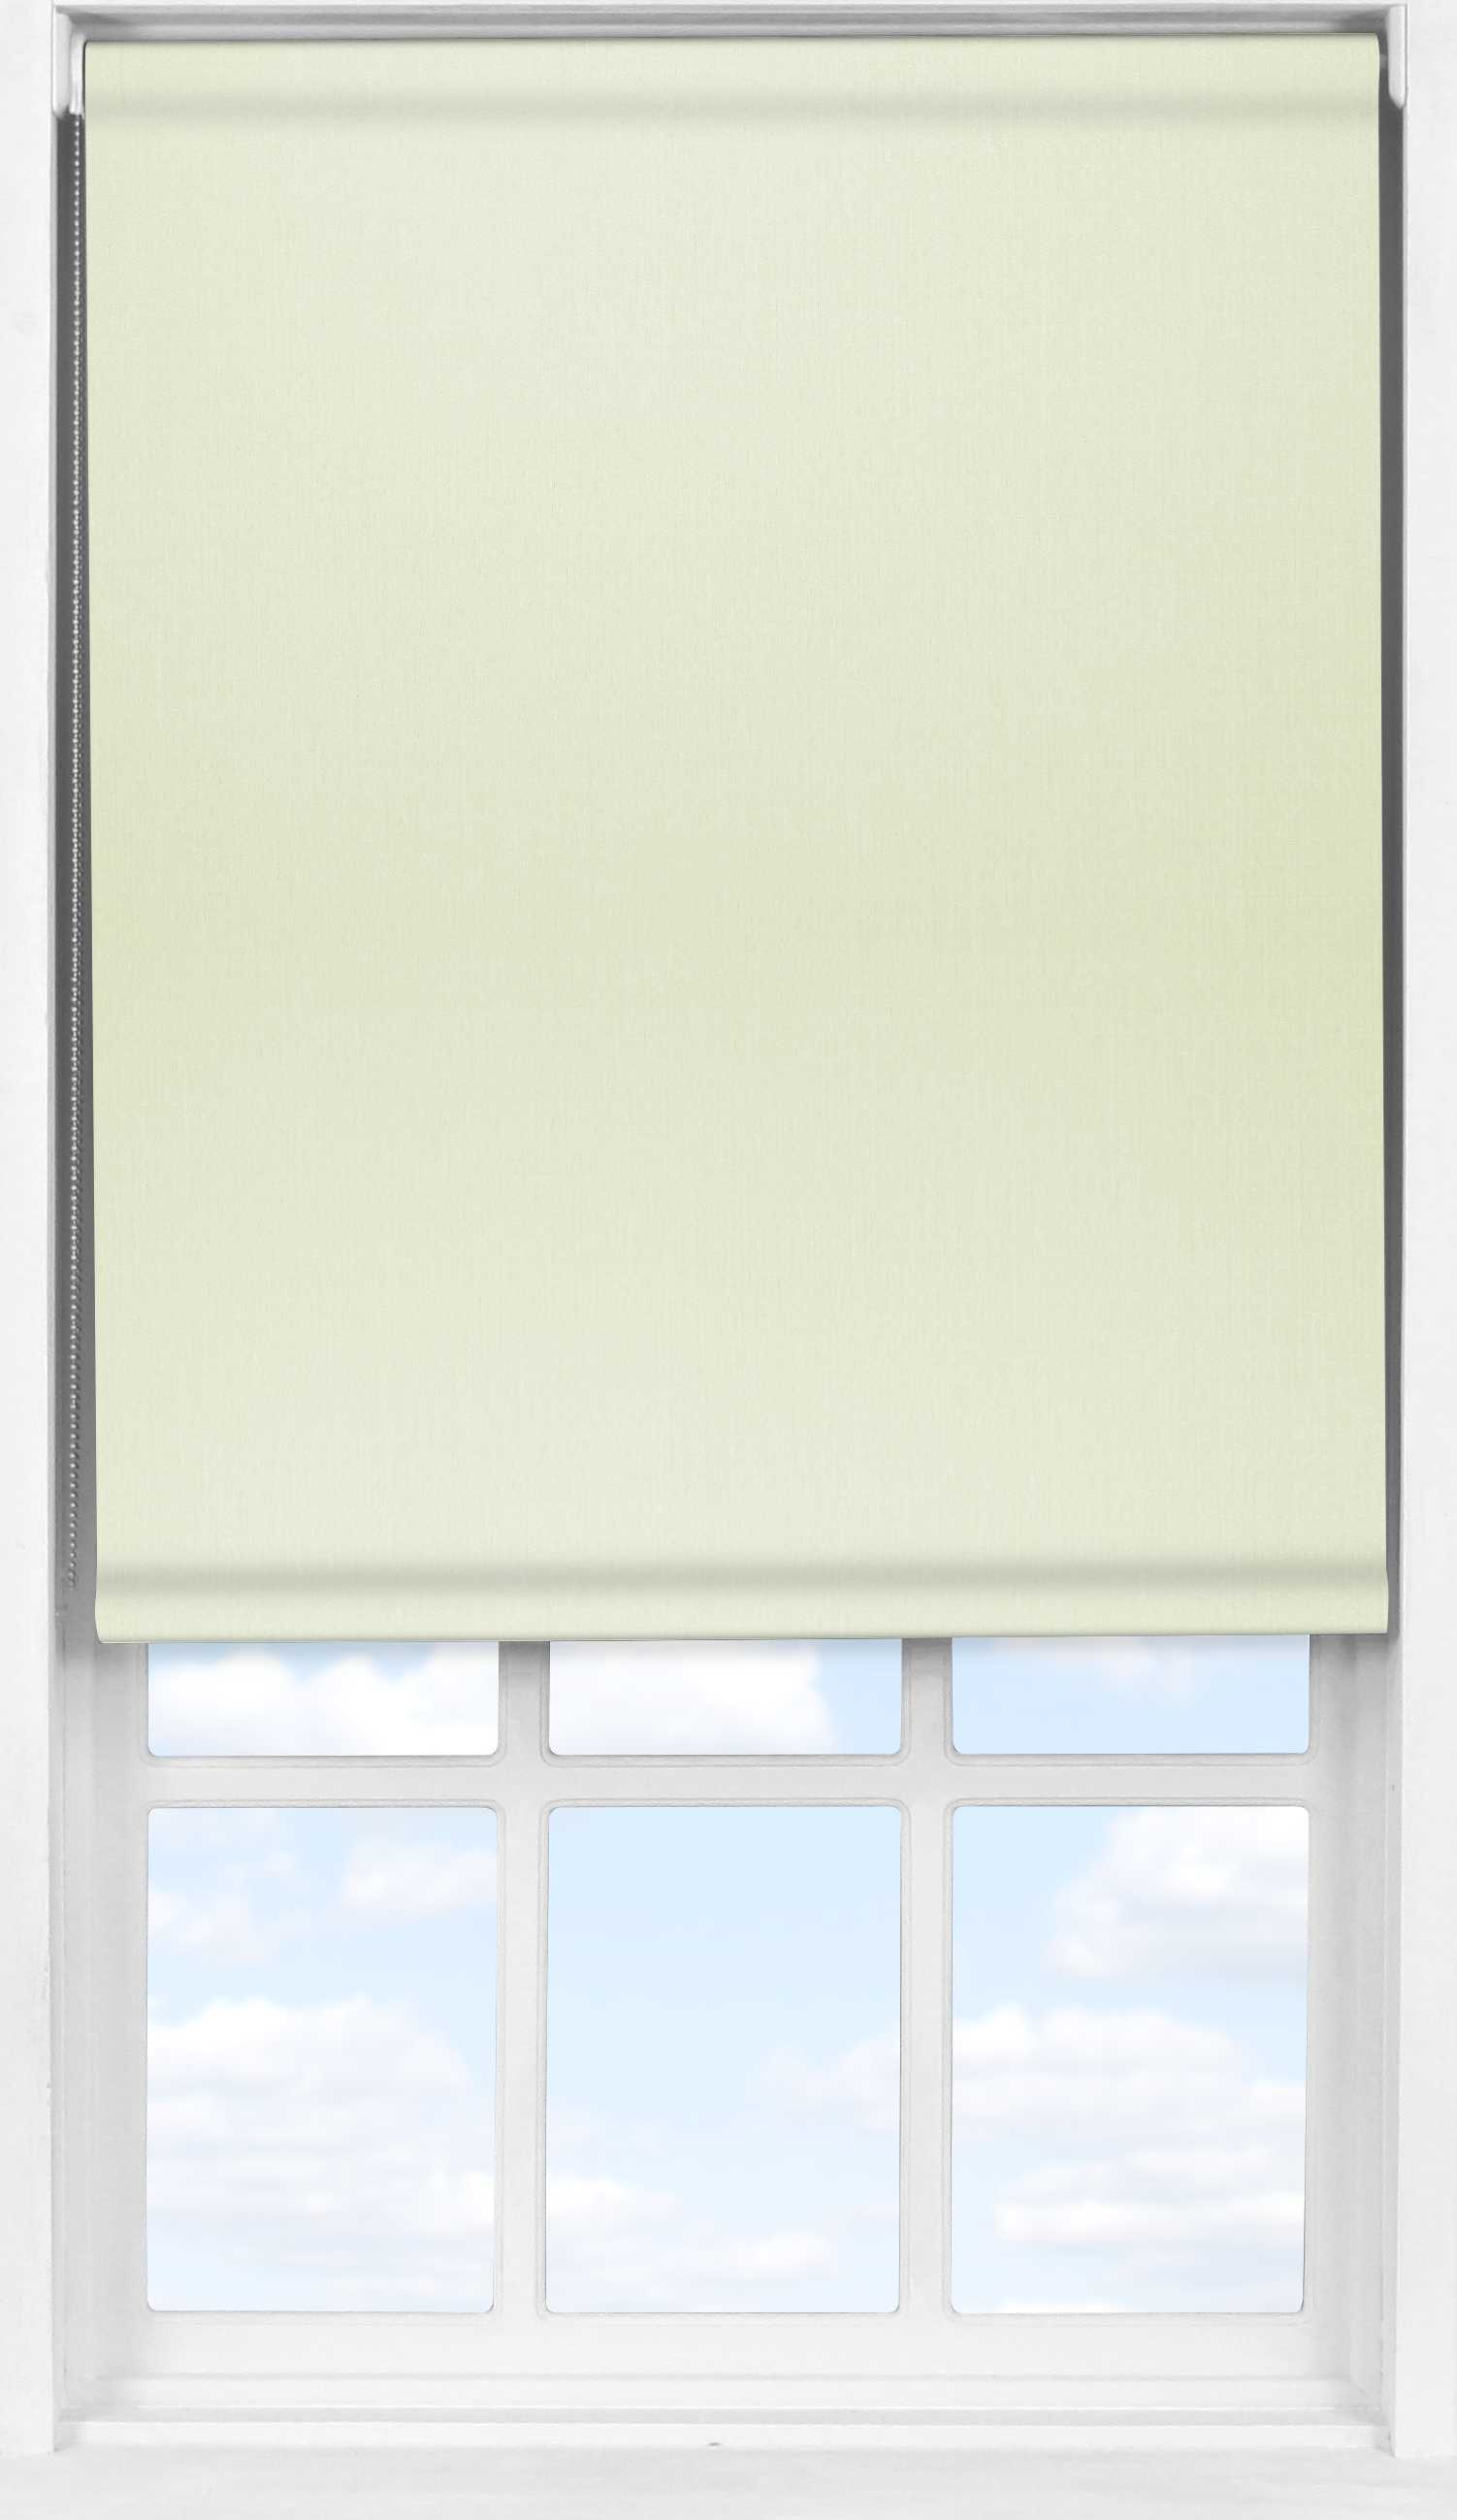 Easifit Roller Blind in Desert Cream Translucent